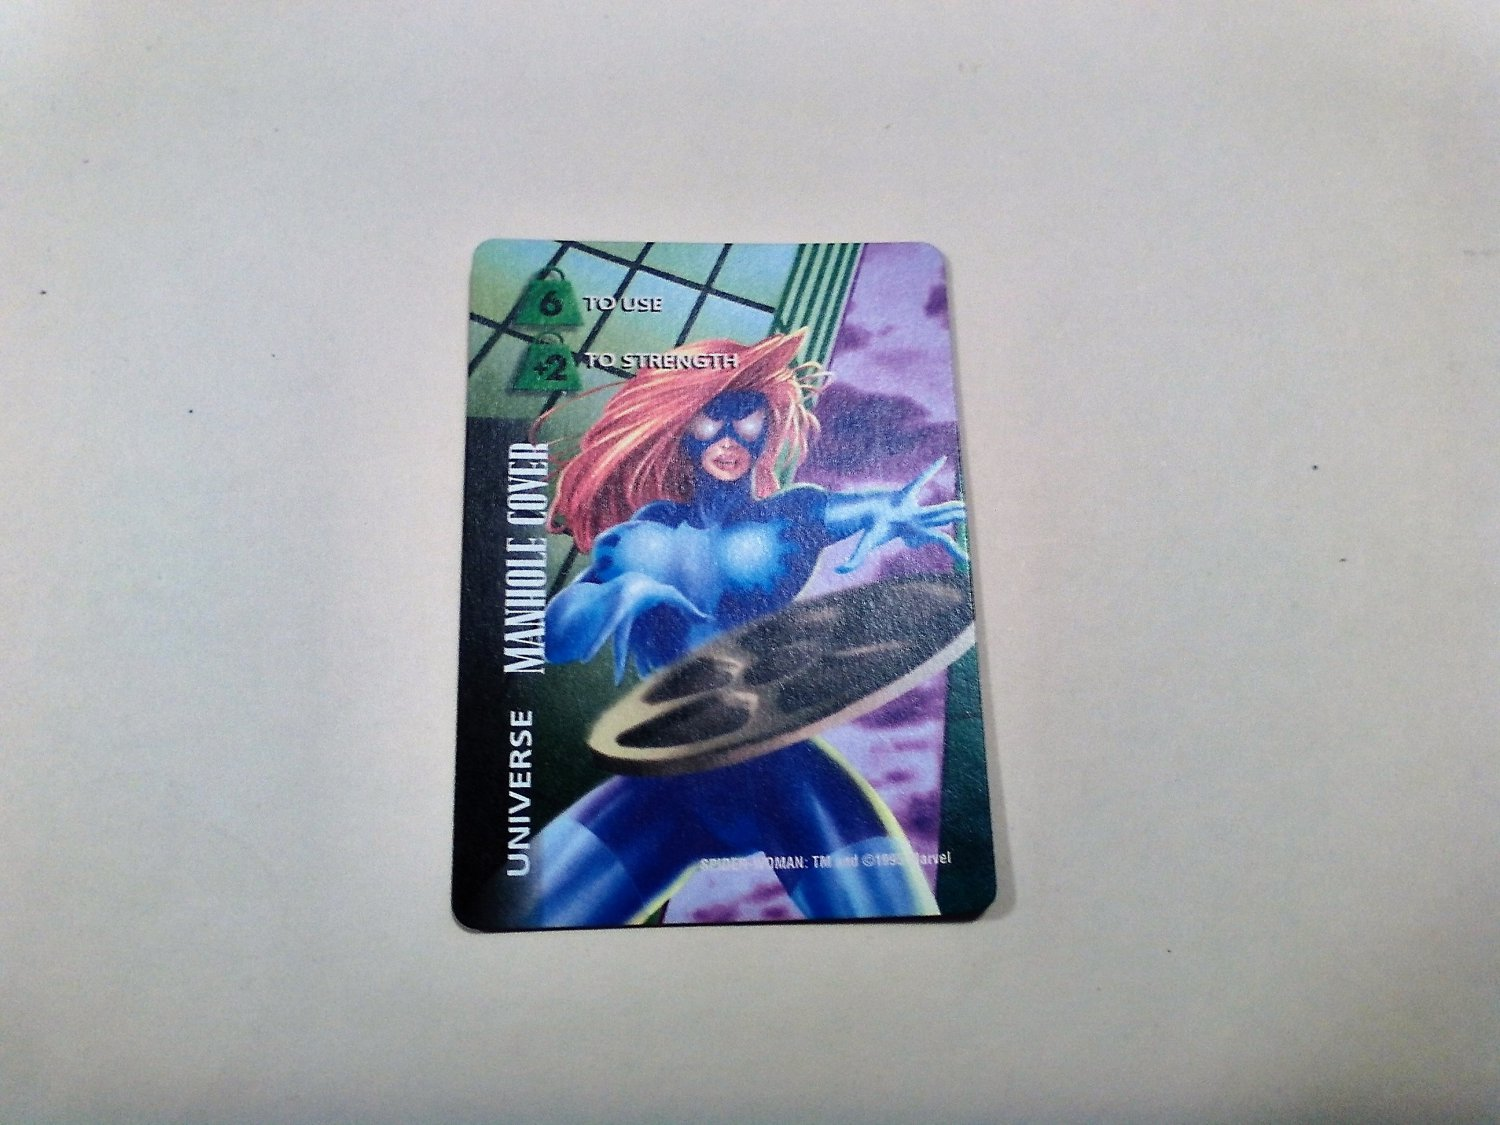 Marvel OverPower - Spider-Woman Manhole Cover No. 324 Common, Universe Card (1995) Fleer